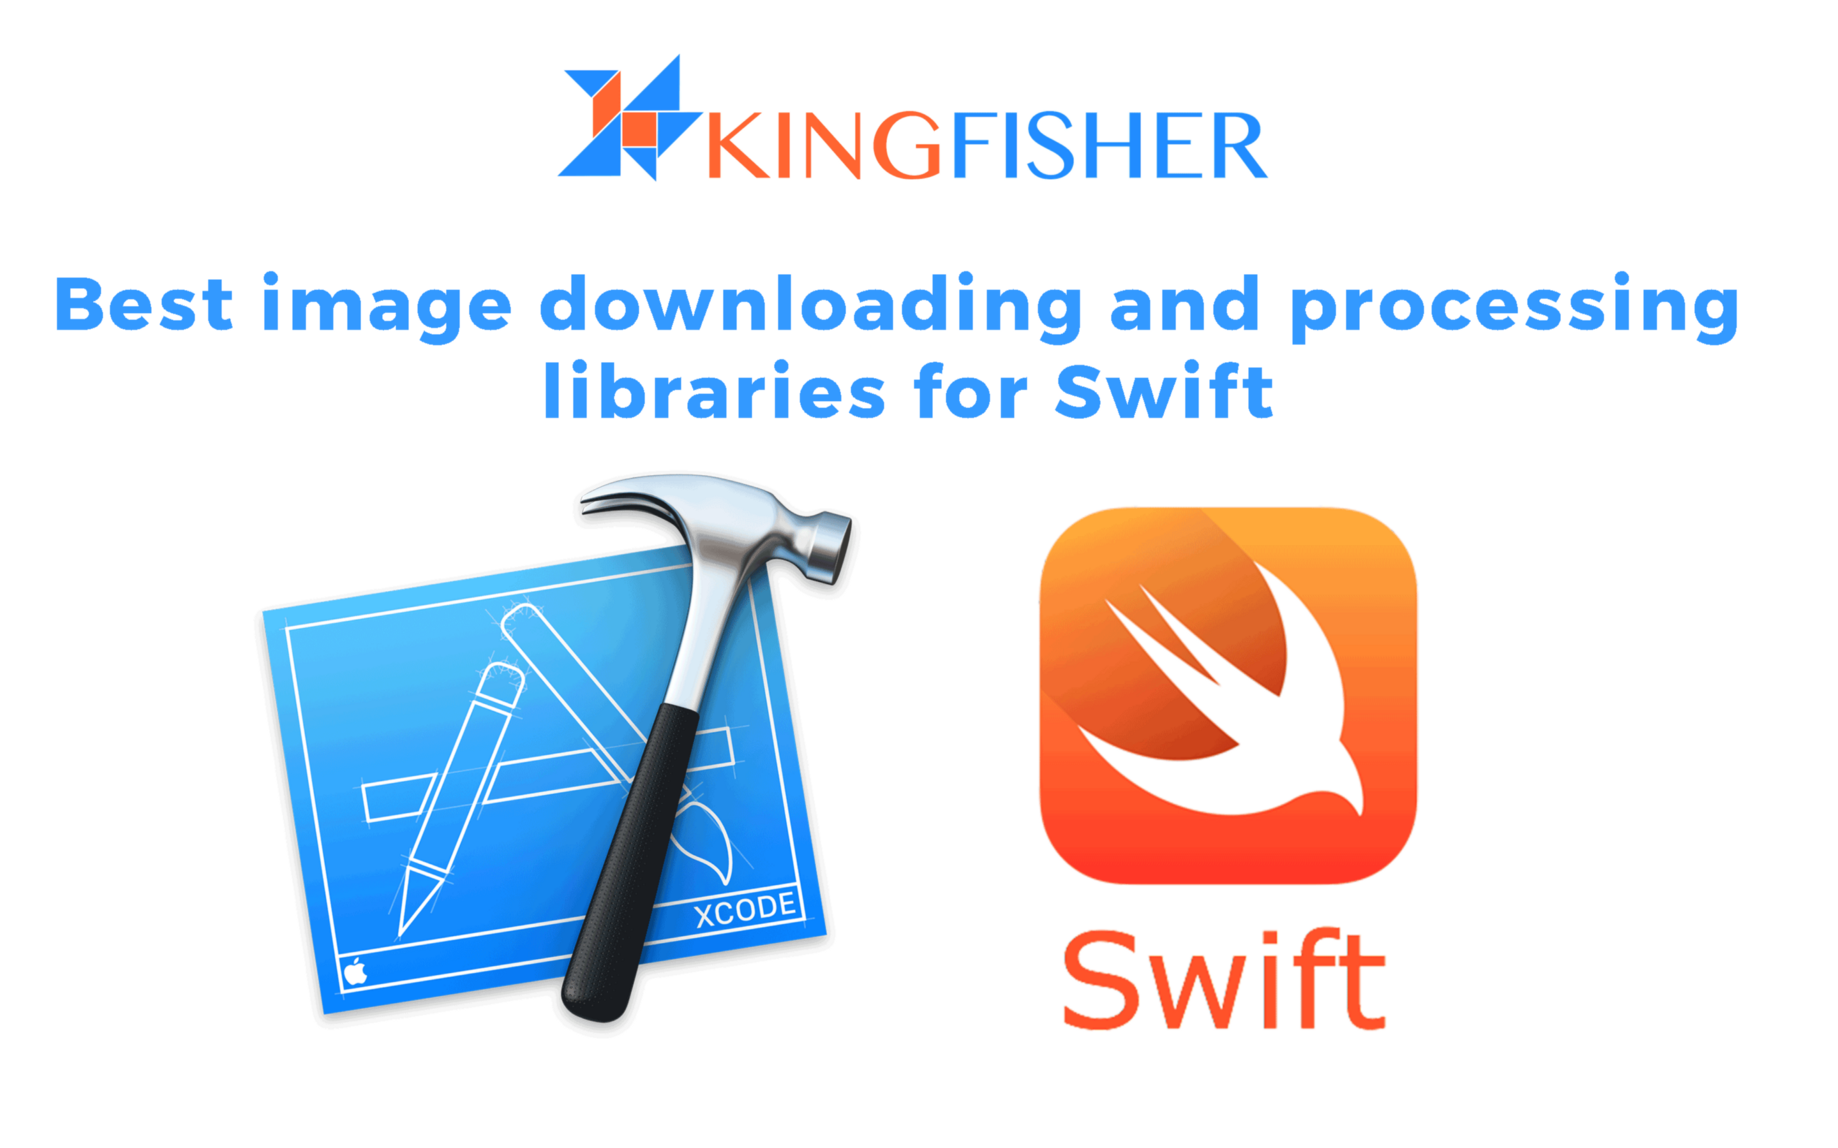 Kingfisher Best image downloading and processing libraries for Swift